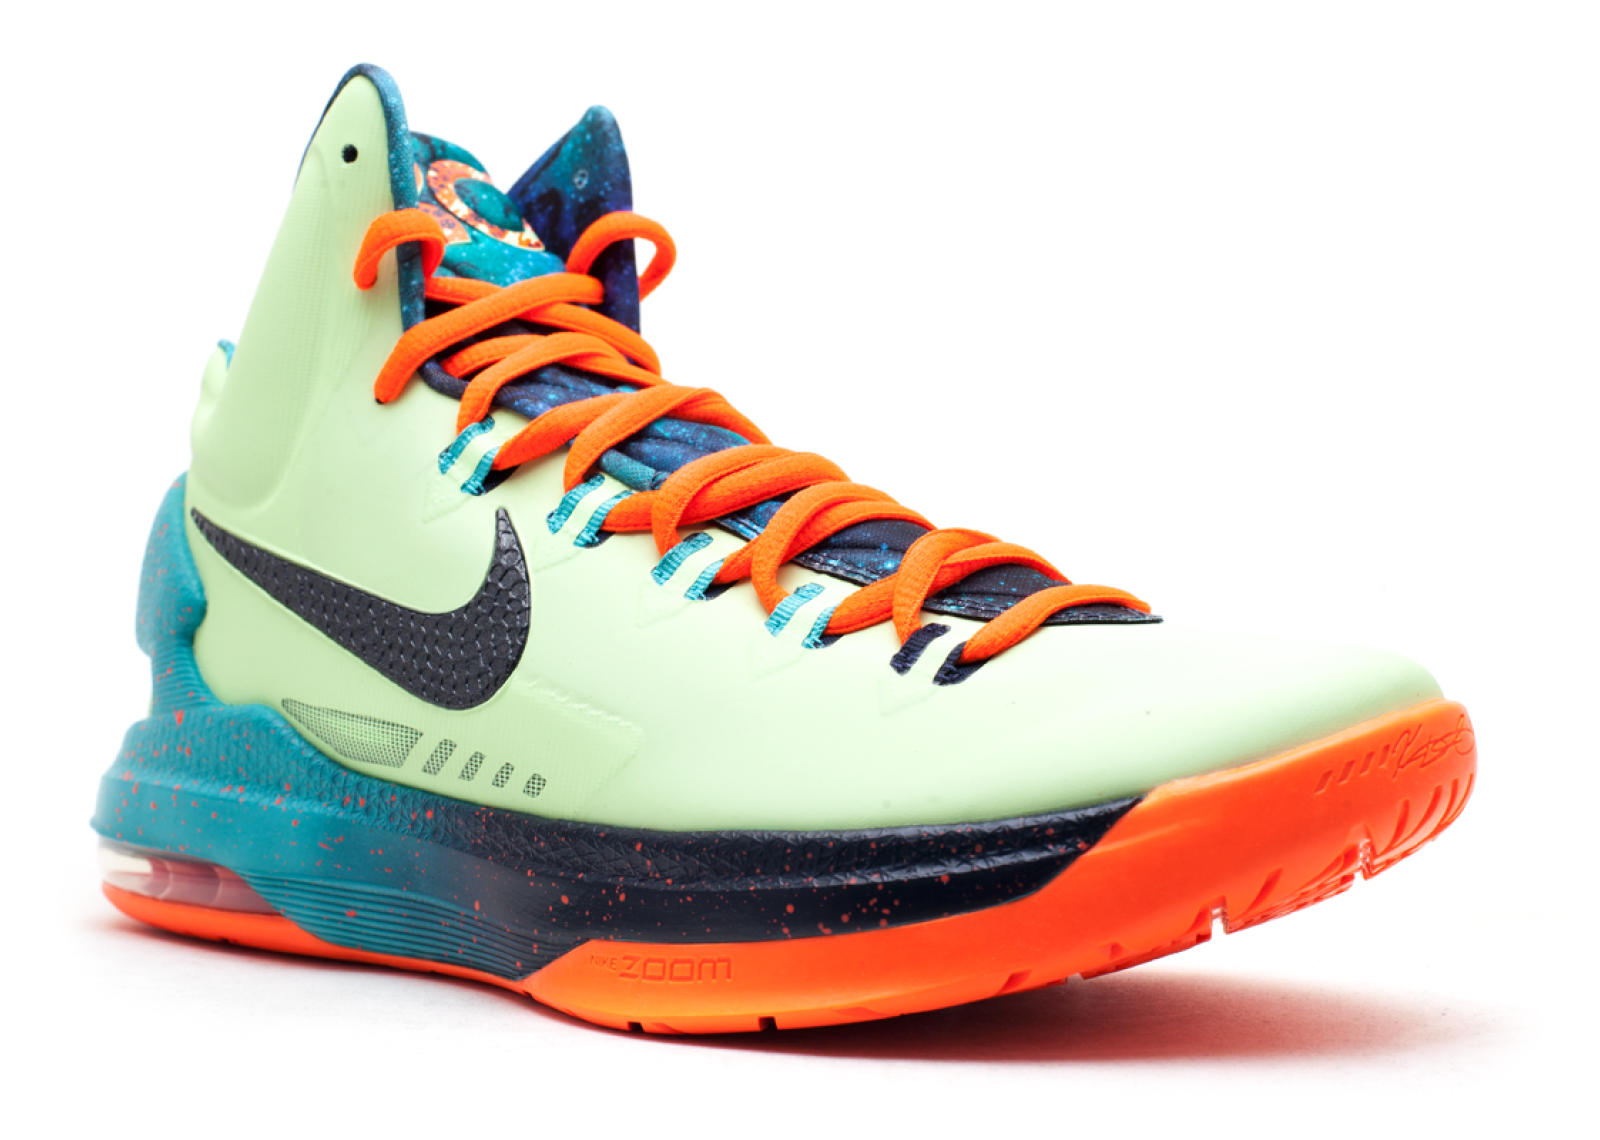 31c9a69d43f0 Nike - Men - Kd 5 - As  Extraterrestrial  - 583111-300 - Size 9.5